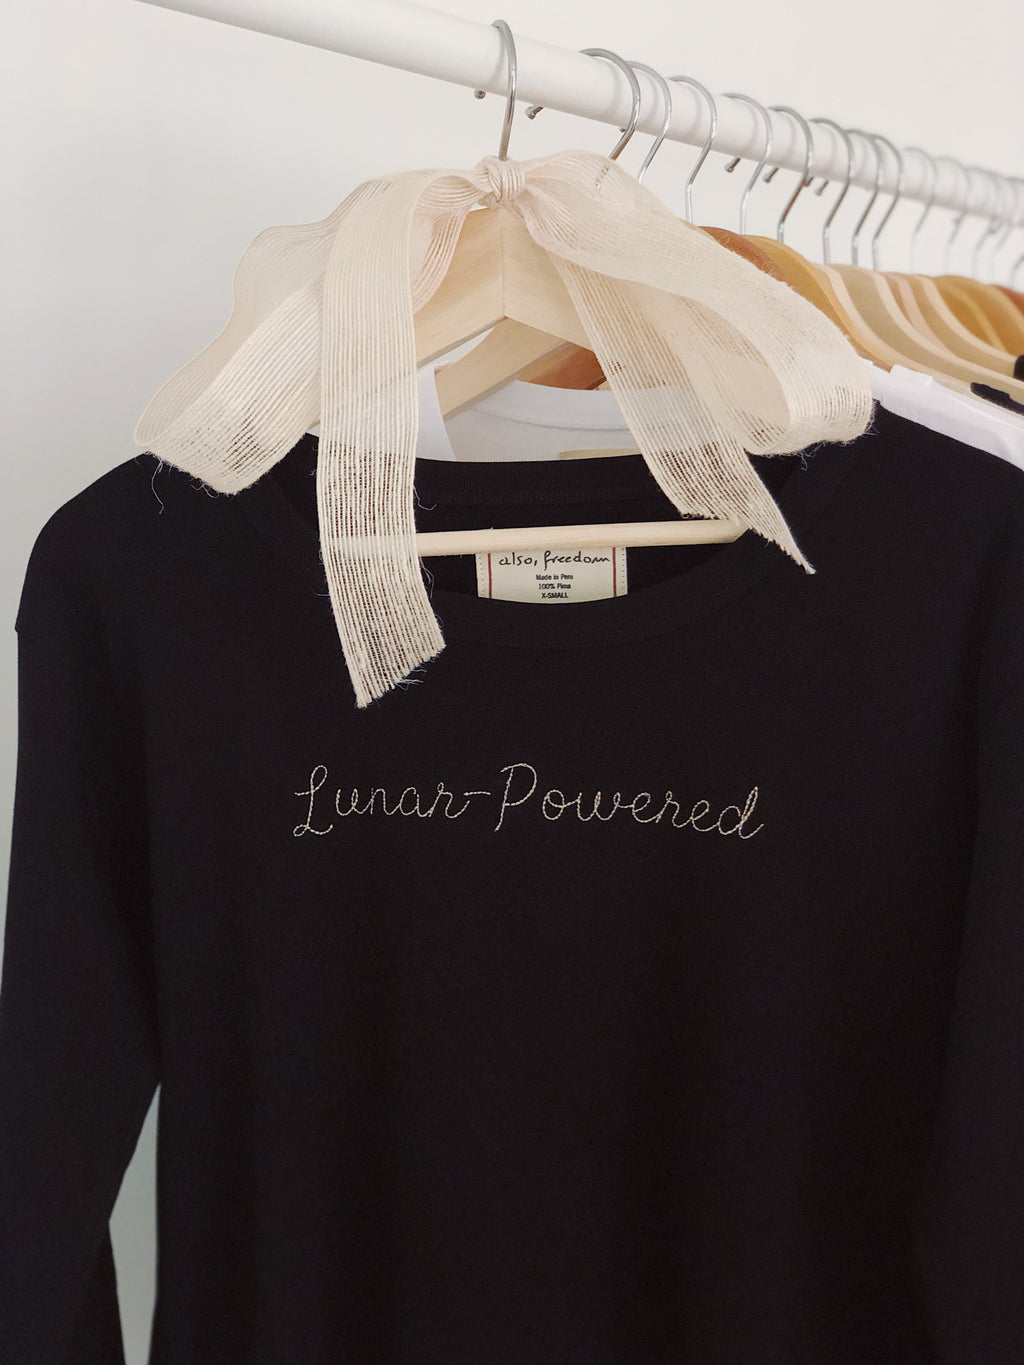 Lunar-Powered, High-Waisted Long Sleeved Tee